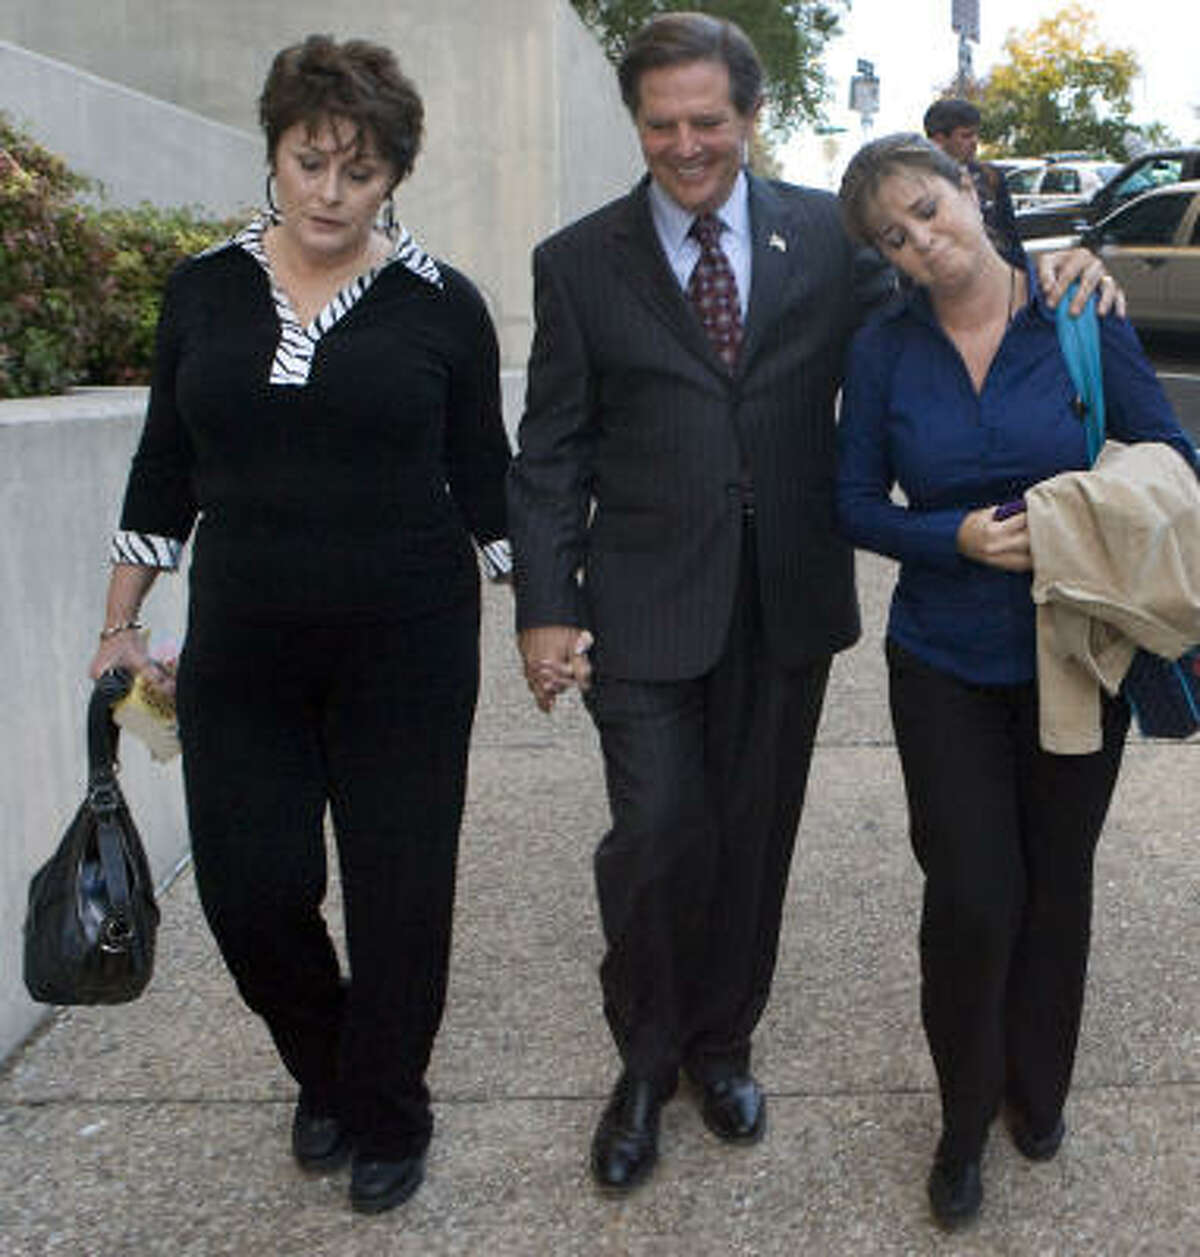 Tom Delay, his wife, Christine, and daughter Danielle Garcia leave the courthouse after Wednesday's verdict.